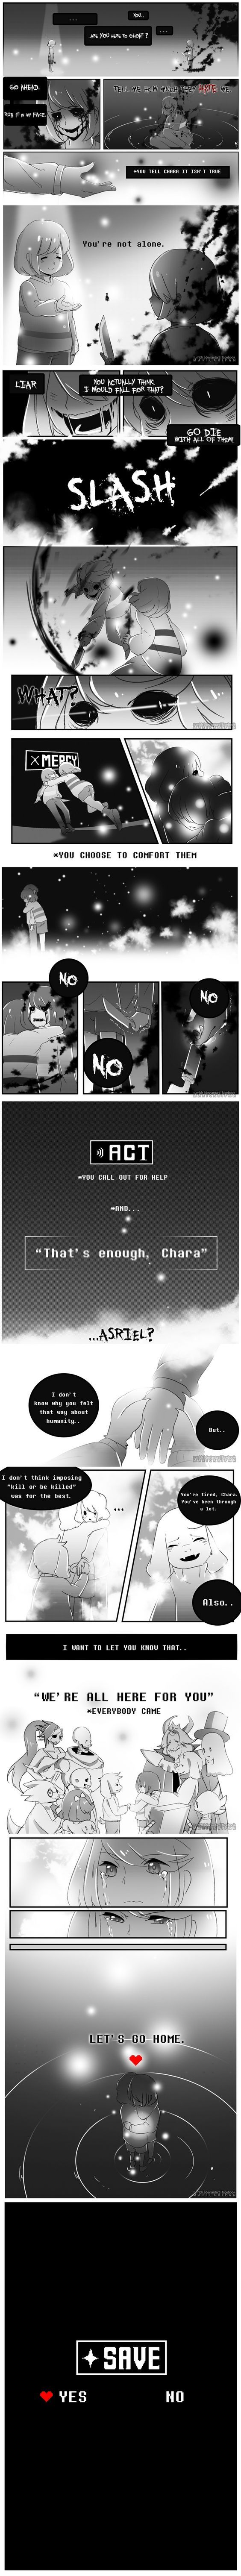 Undertale Comic : SAVE CHARA by maricaripan.deviantart.com on @DeviantArt: